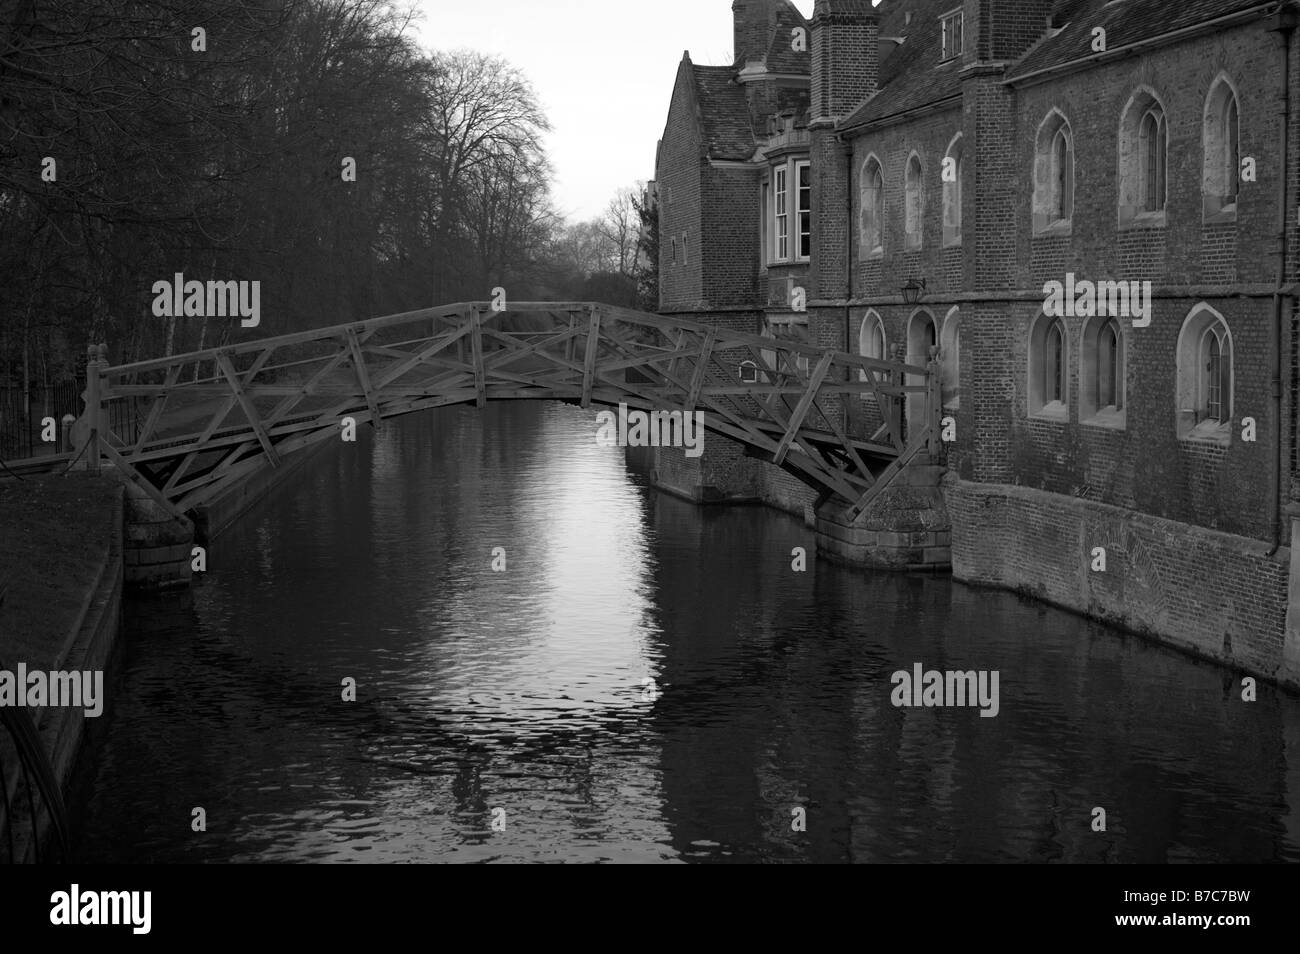 The Wooden Bridge over the River Cam in Cambridge, also commonly known as the Mathematical Bridge - Stock Image